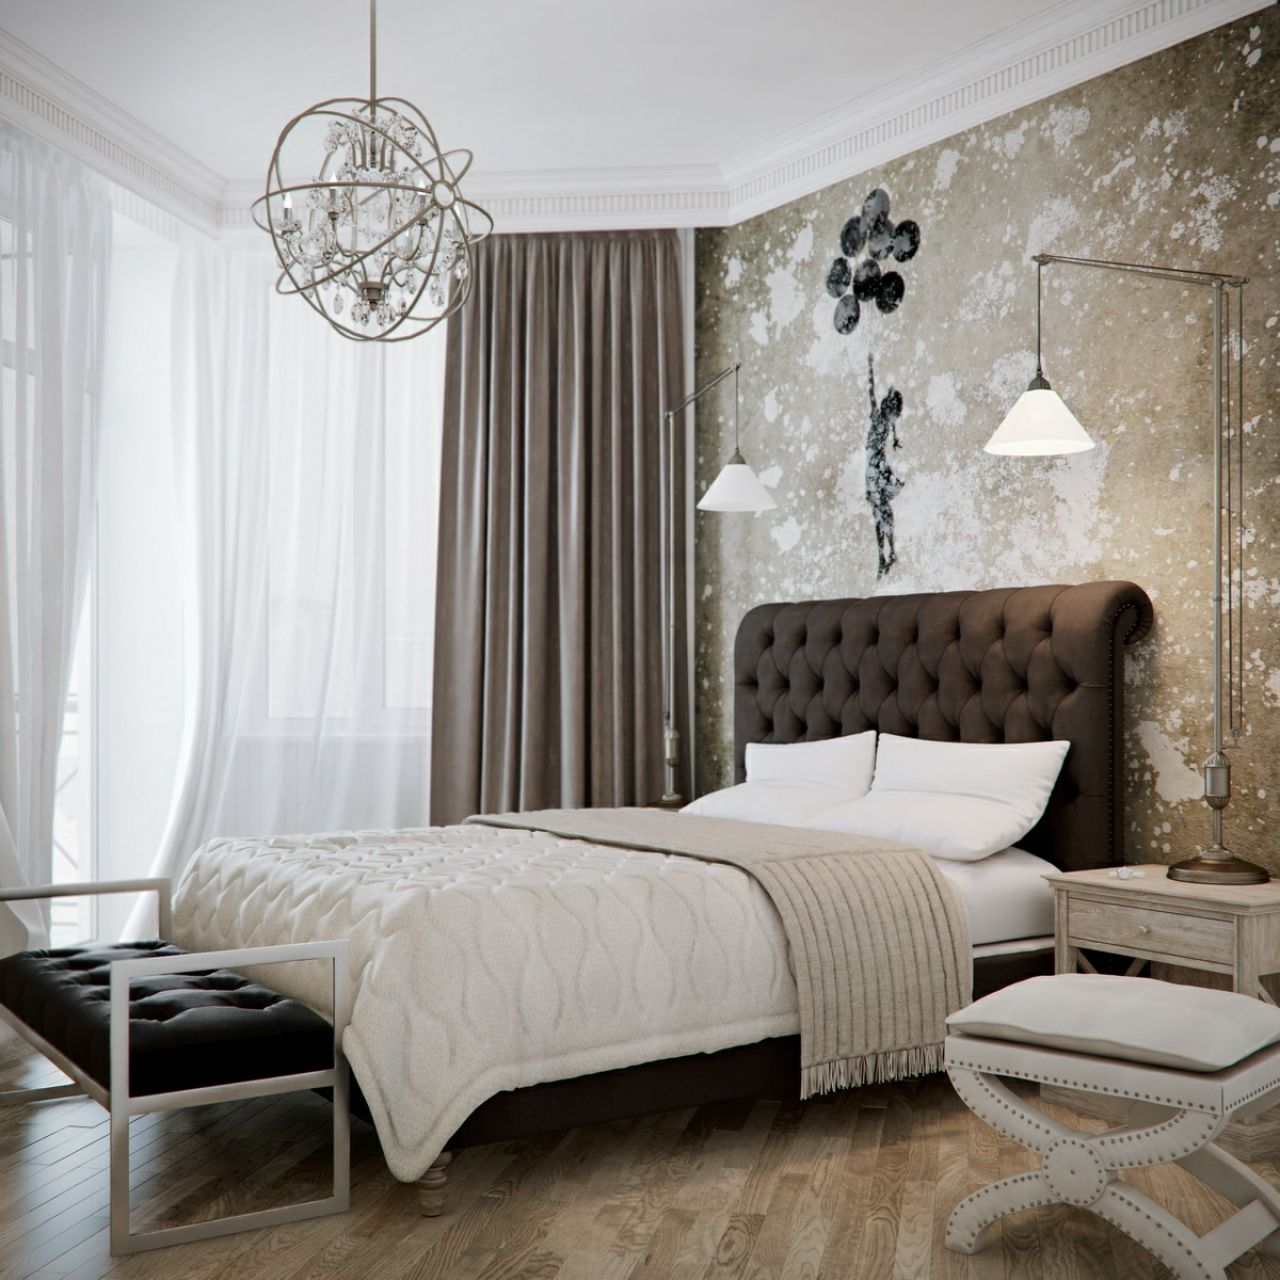 Tufted headboard Bedroom Ideas